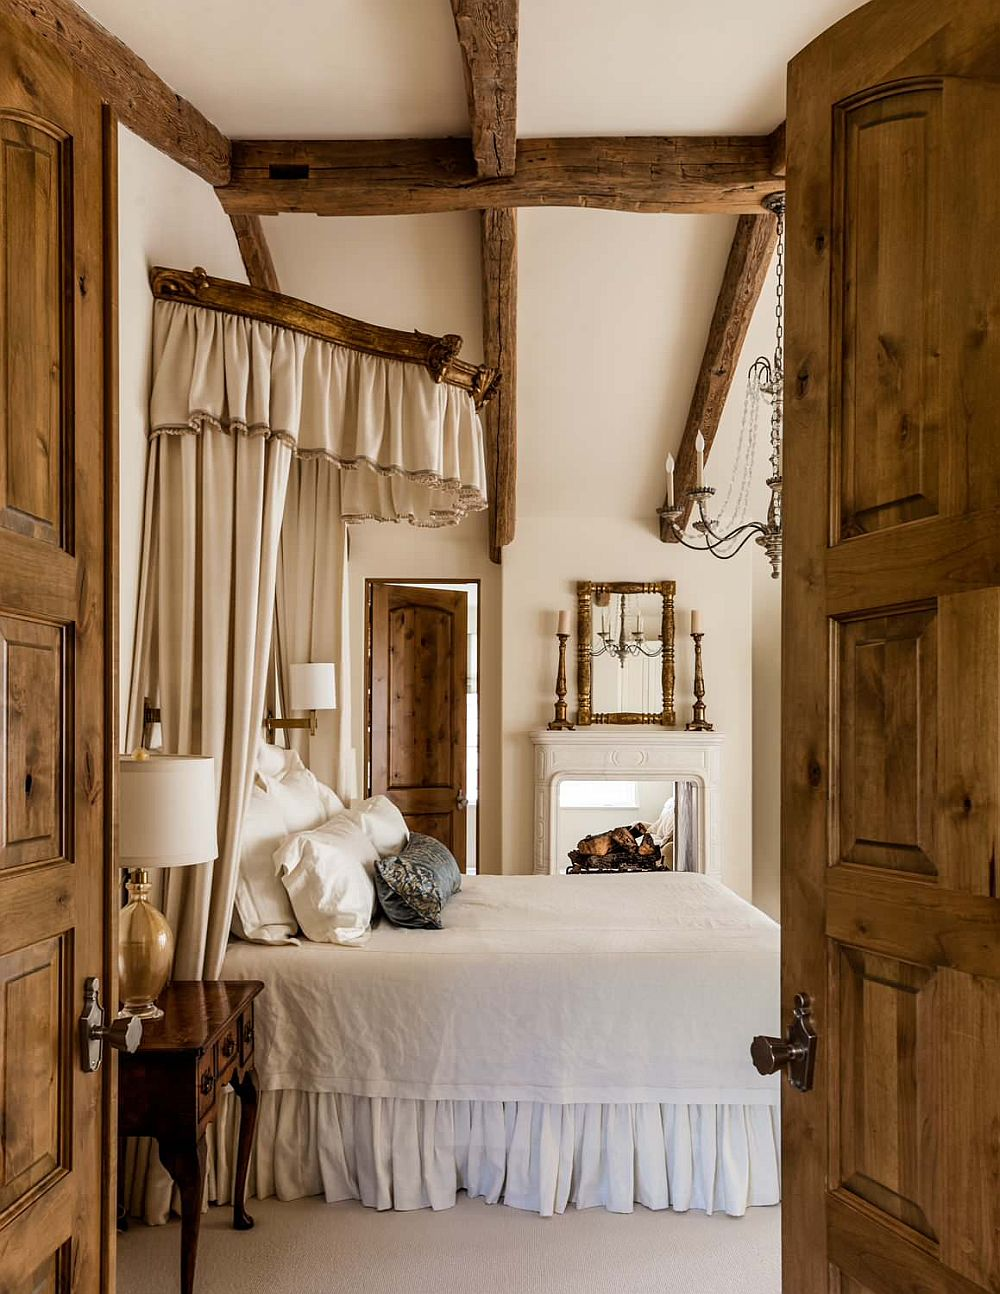 It is the bed that steals the show in this lovely rustic bedroom in white